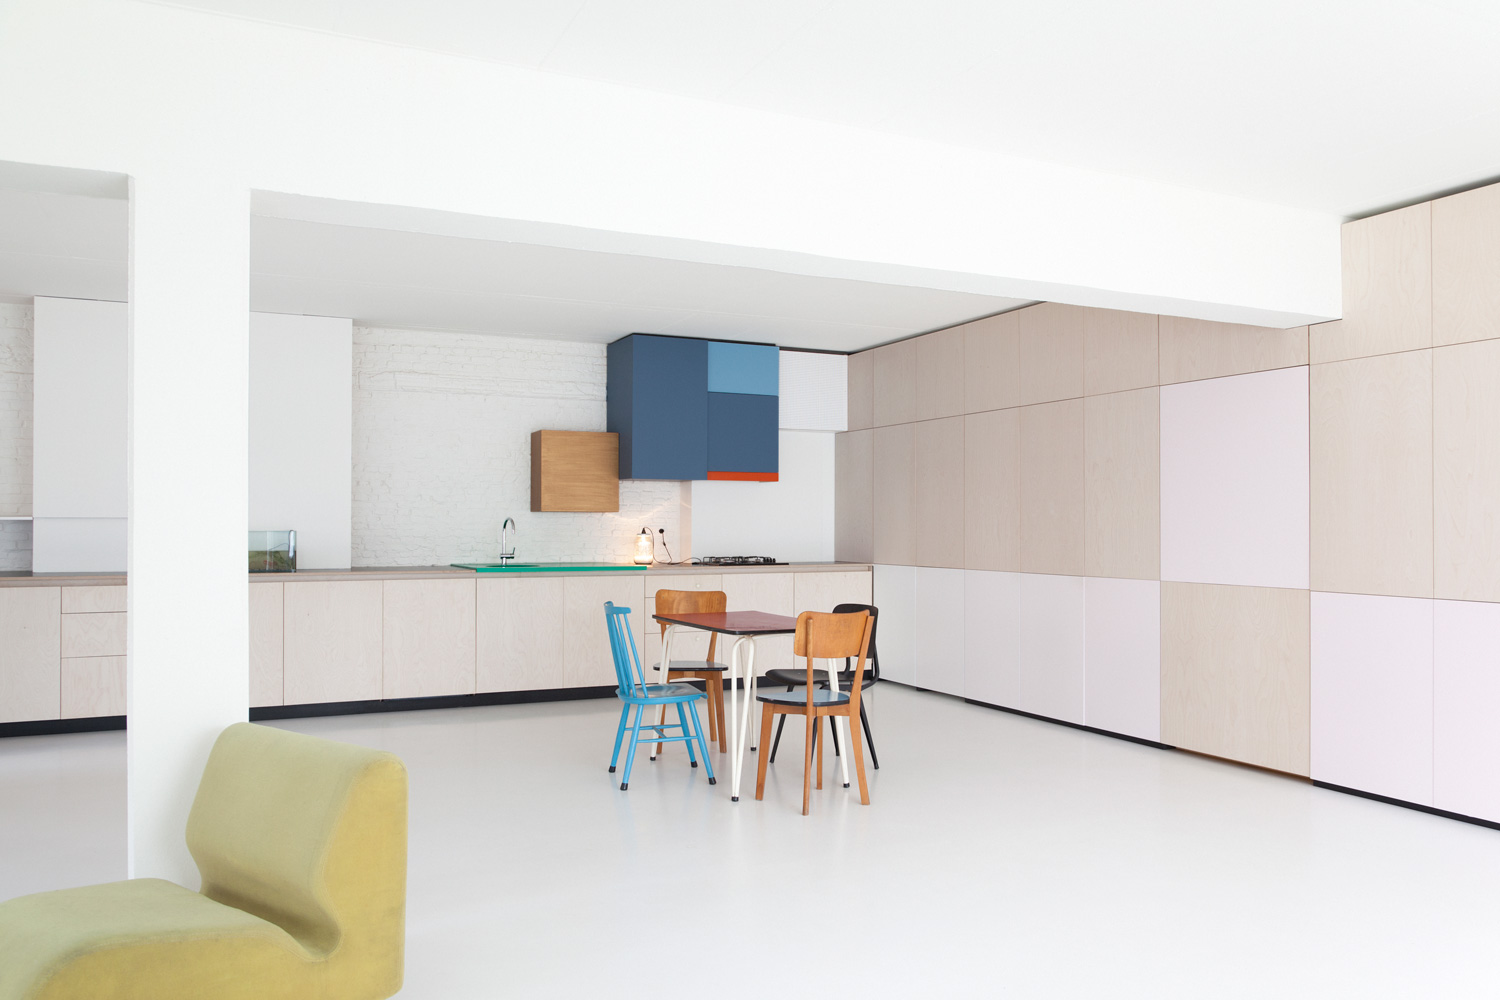 colorful kitchen by belgian designer dries otten Colorful Kitchen By Belgian Designer Dries Otten